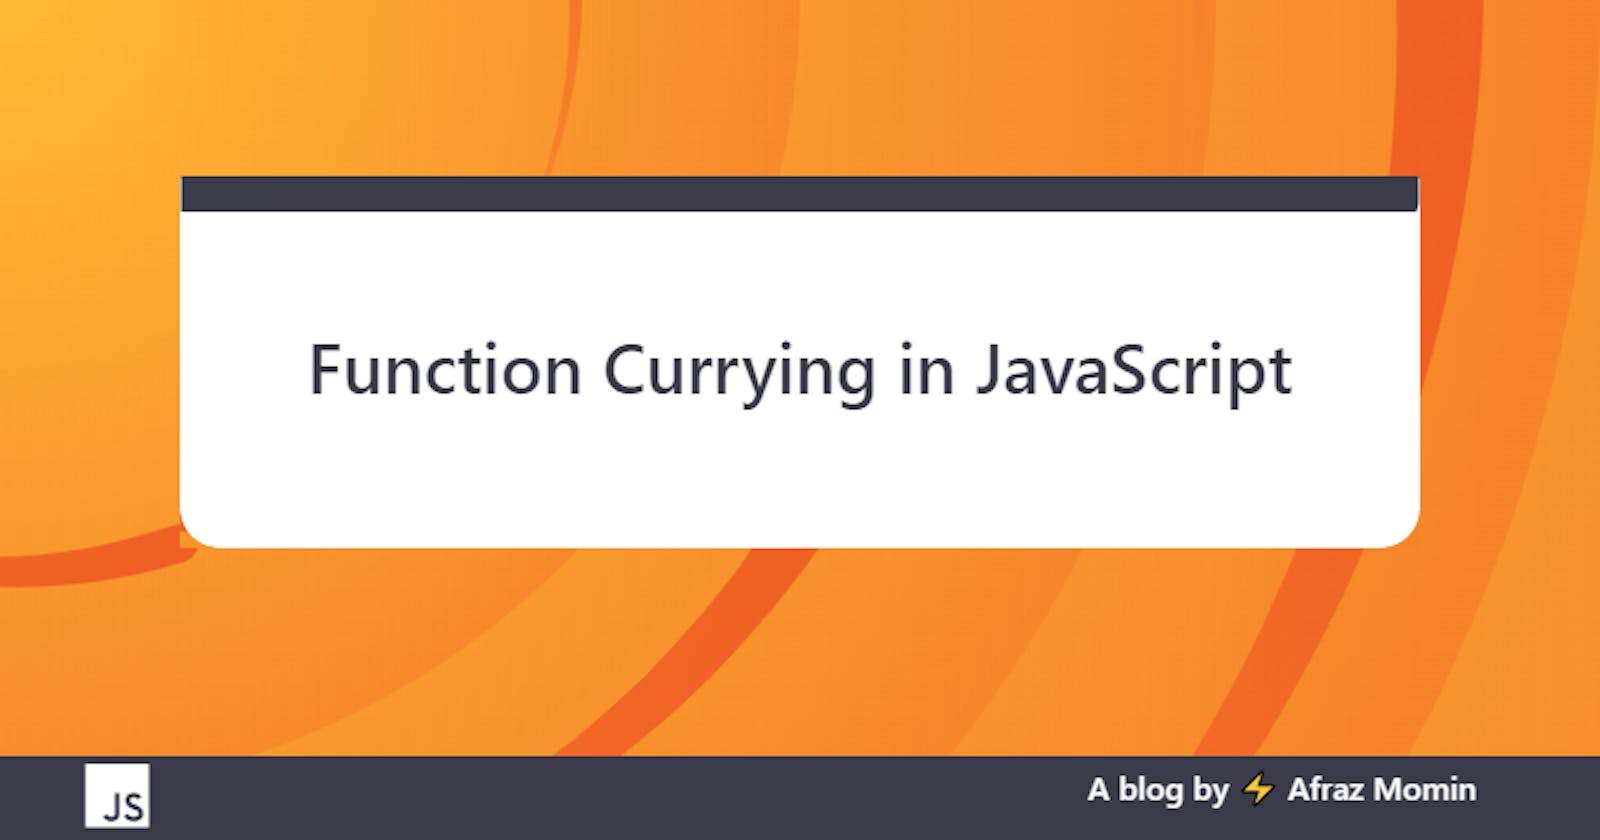 Function Currying in JavaScript